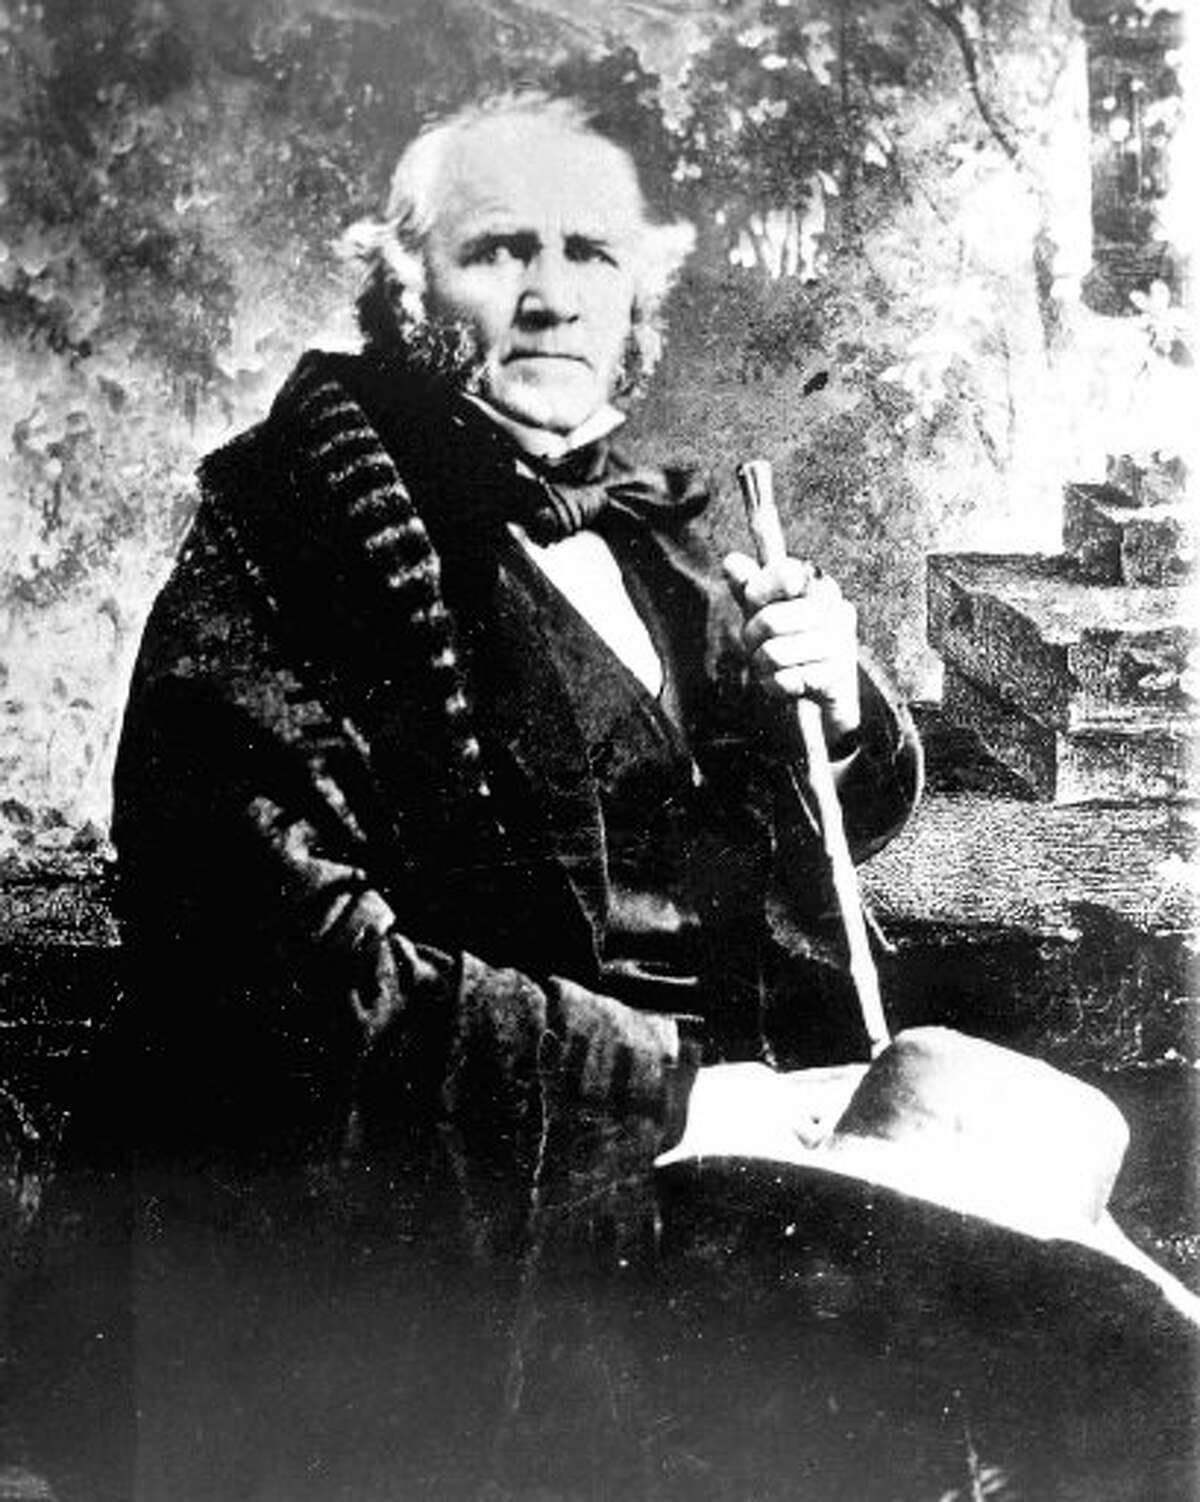 Two-state governorFact: Sam Houston is the only person to serve as governor of two U.S. states: Tennessee and Texas. He also served as the first president of the Republic of Texas and later represented the state of Texas in the U.S. Senate.